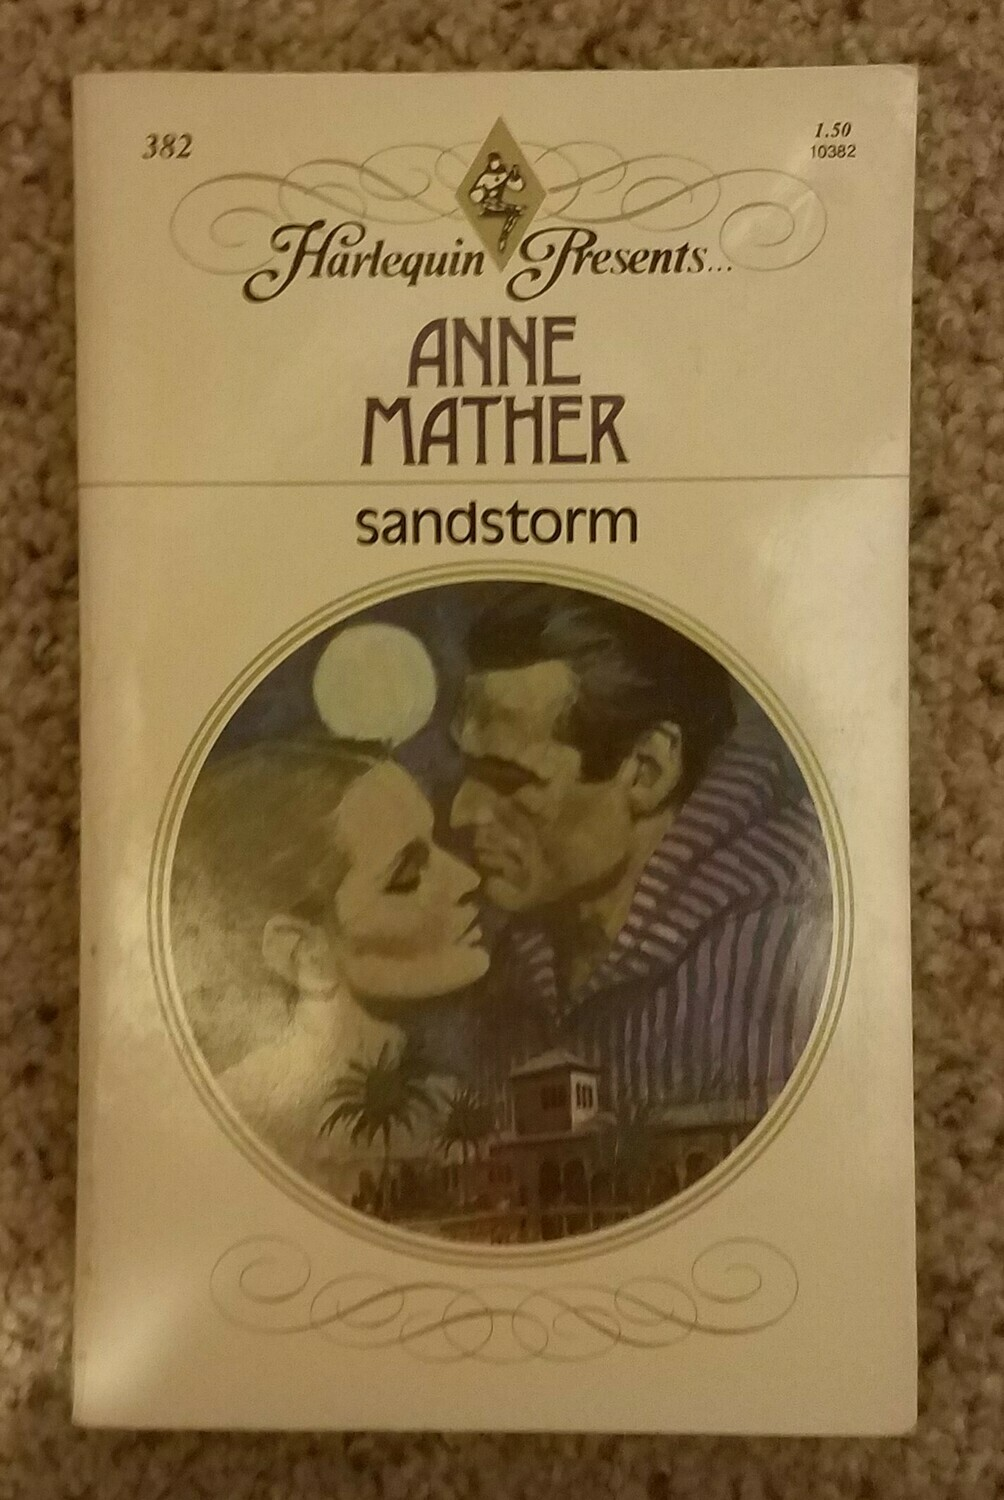 Sandstorm by Anne Mather